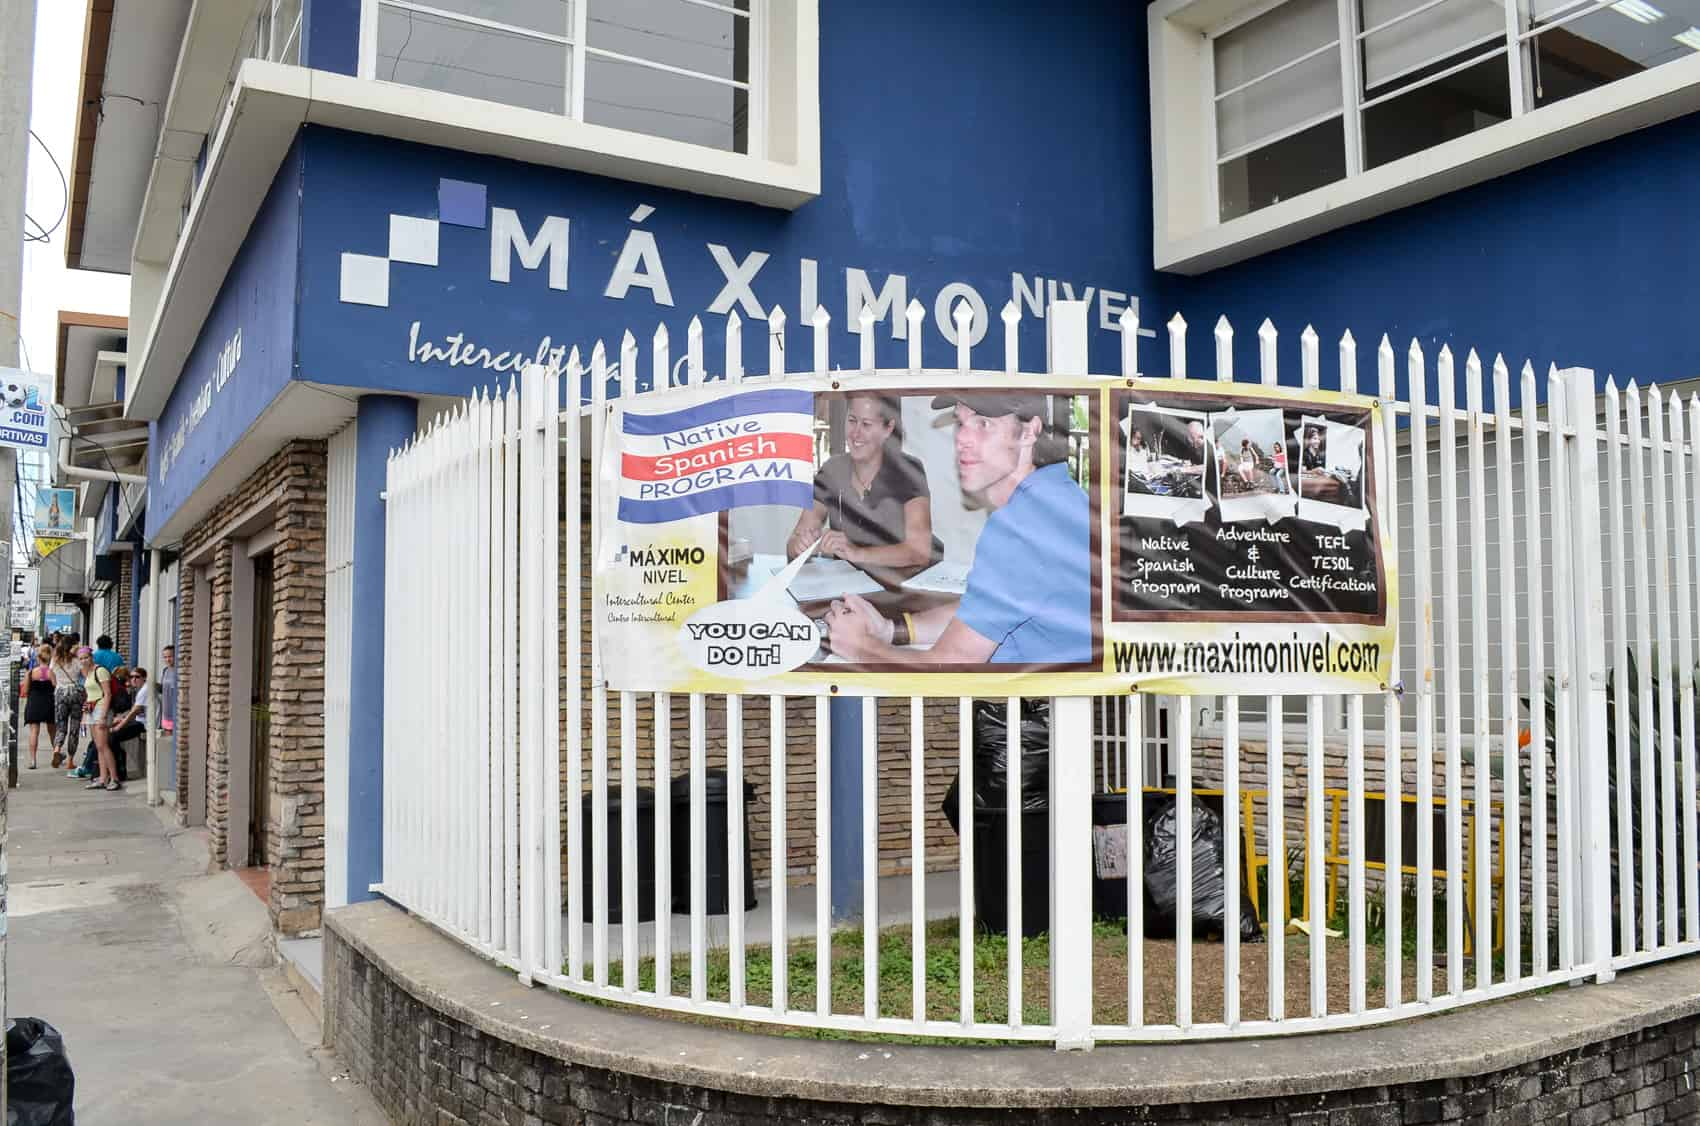 The Máximo Nivel Building located in San Pedro, east of San José, March 17, 2015.